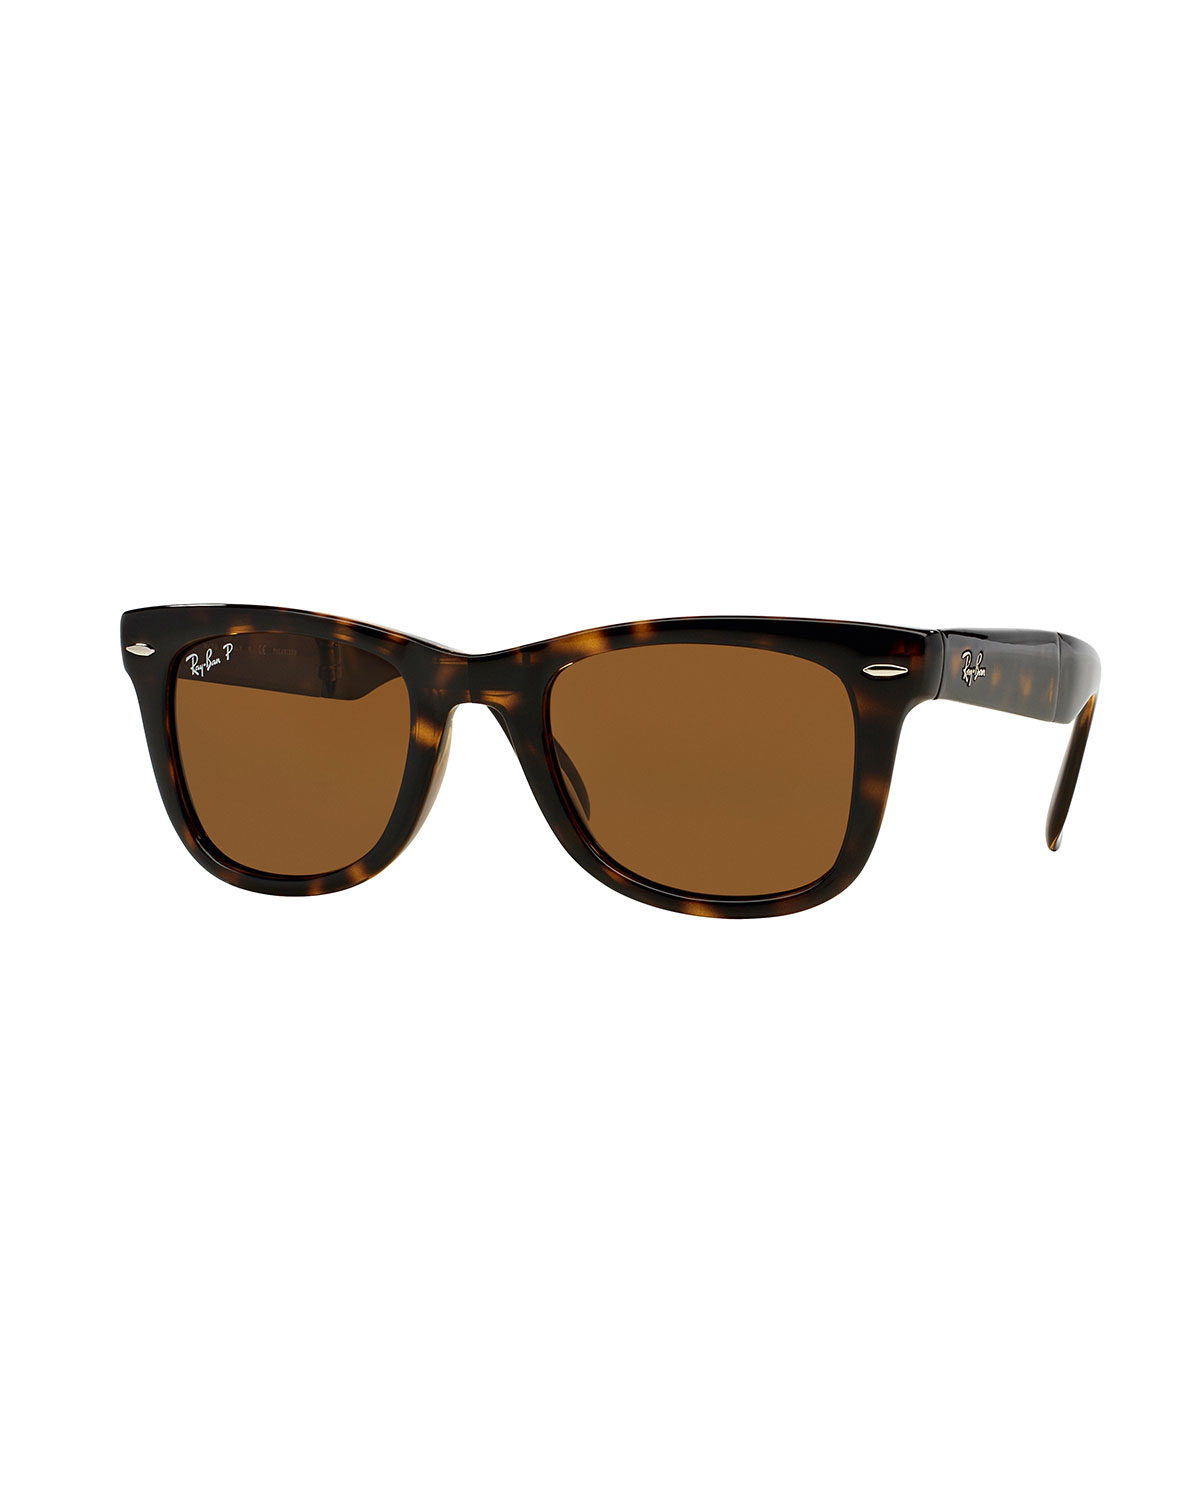 e3ee5a78c5 Ray Ban Wayfarer For Men Polarized « Heritage Malta